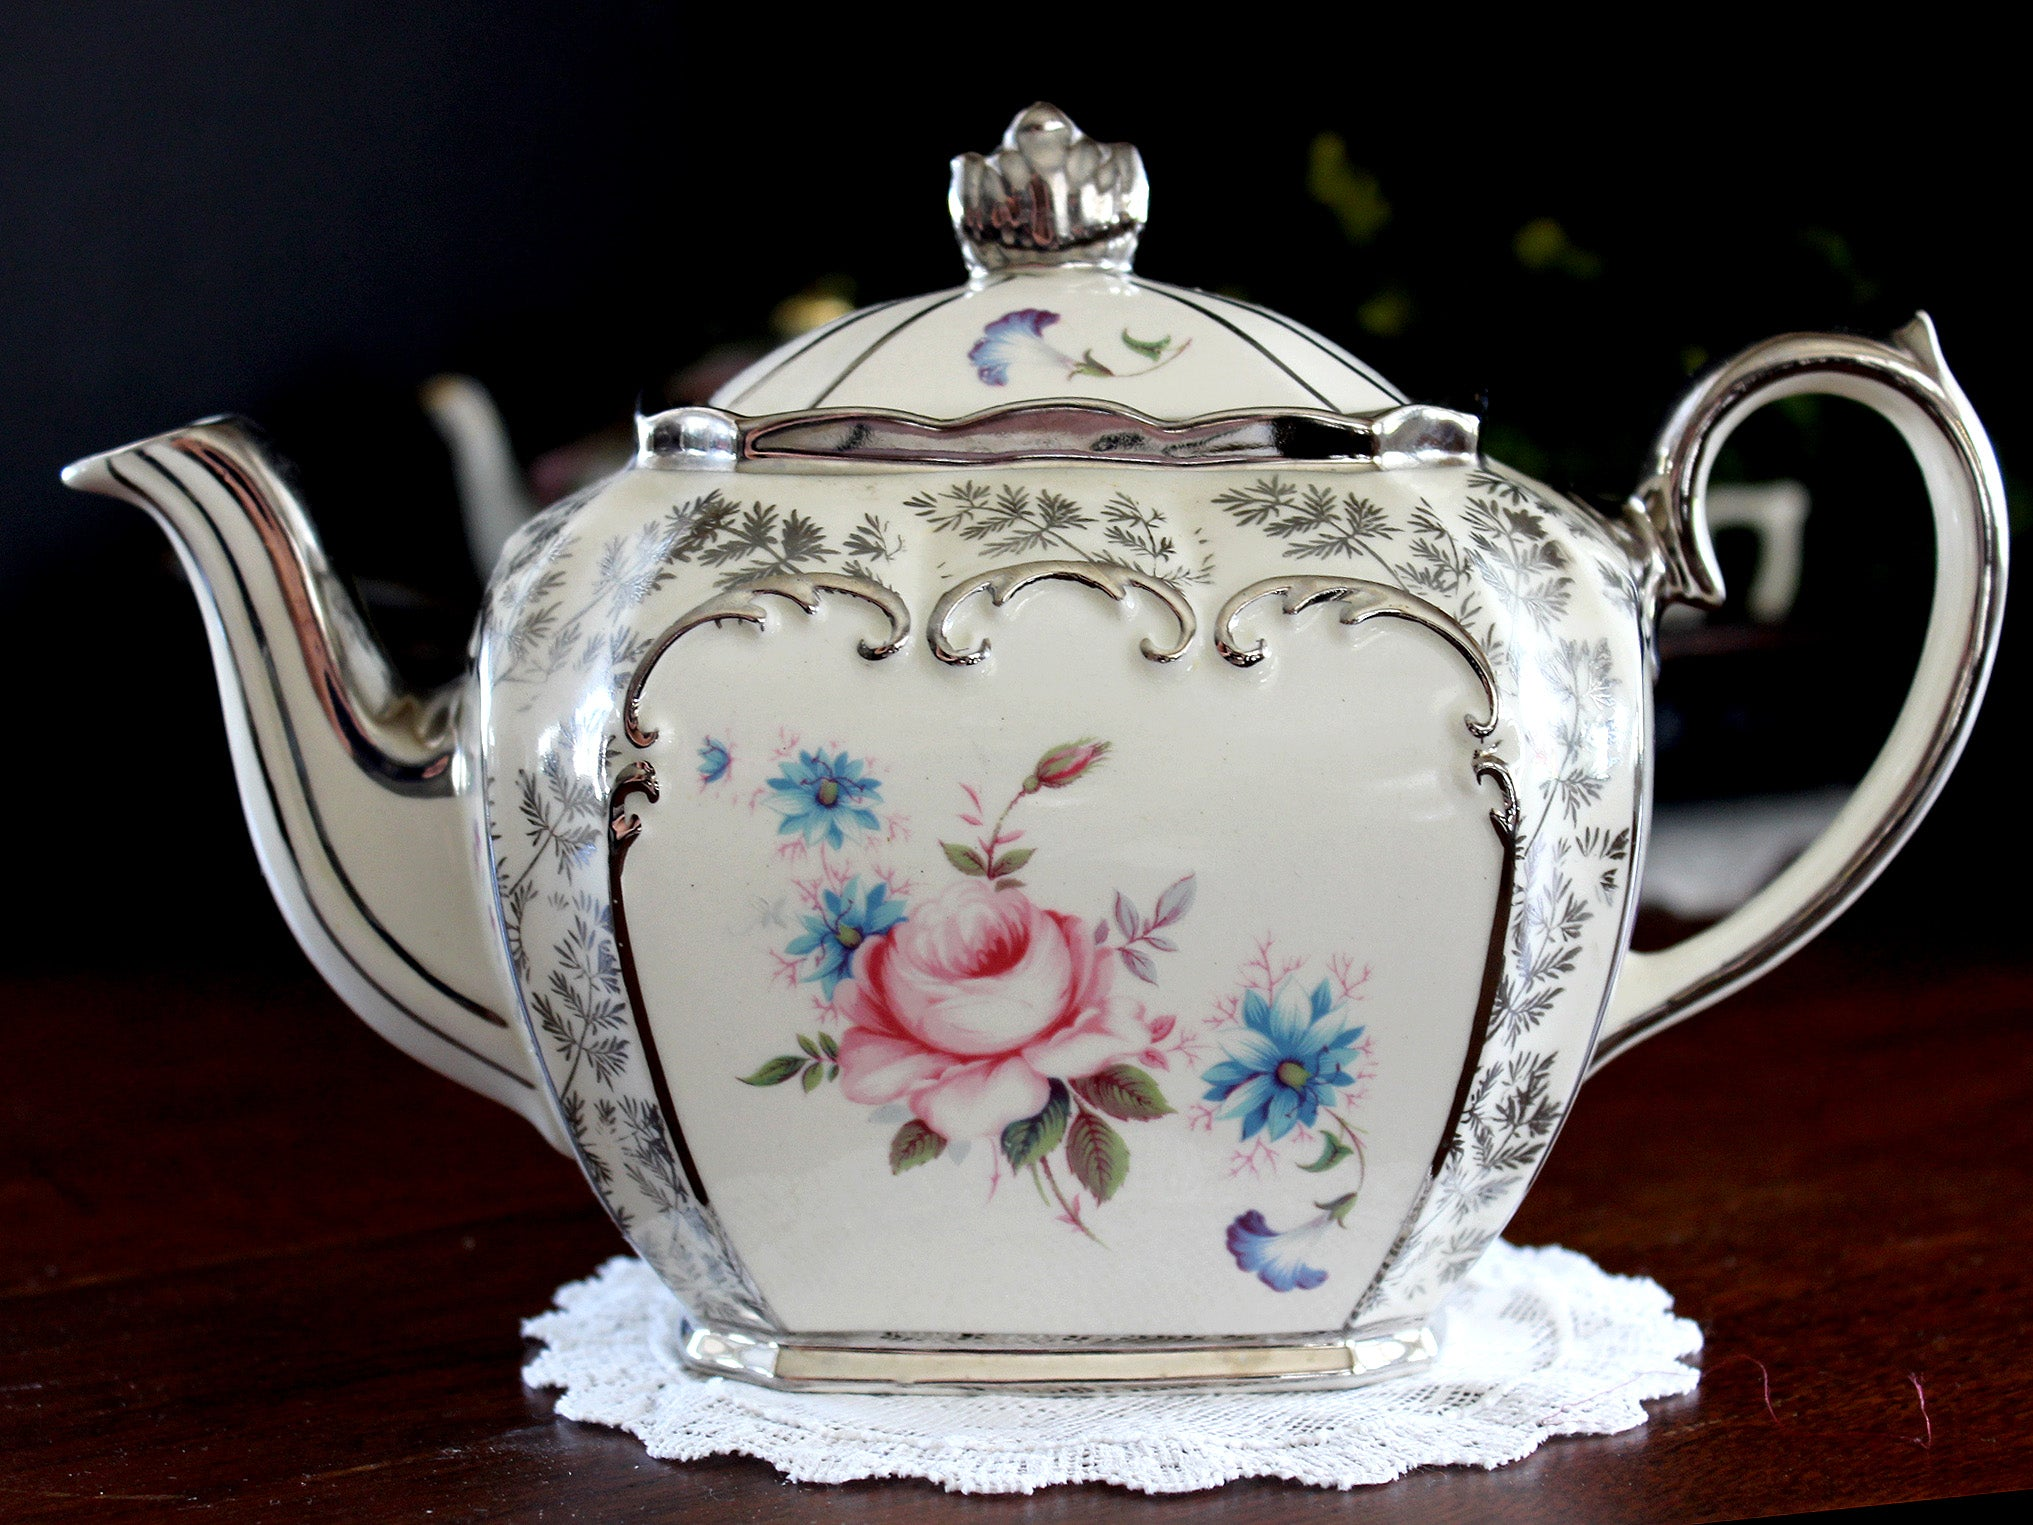 CROWN DORSET ENGLISH COLLECTABLES 6 CUP CHELSEA TEAPOT WITH PALE SPRING FLOWERS